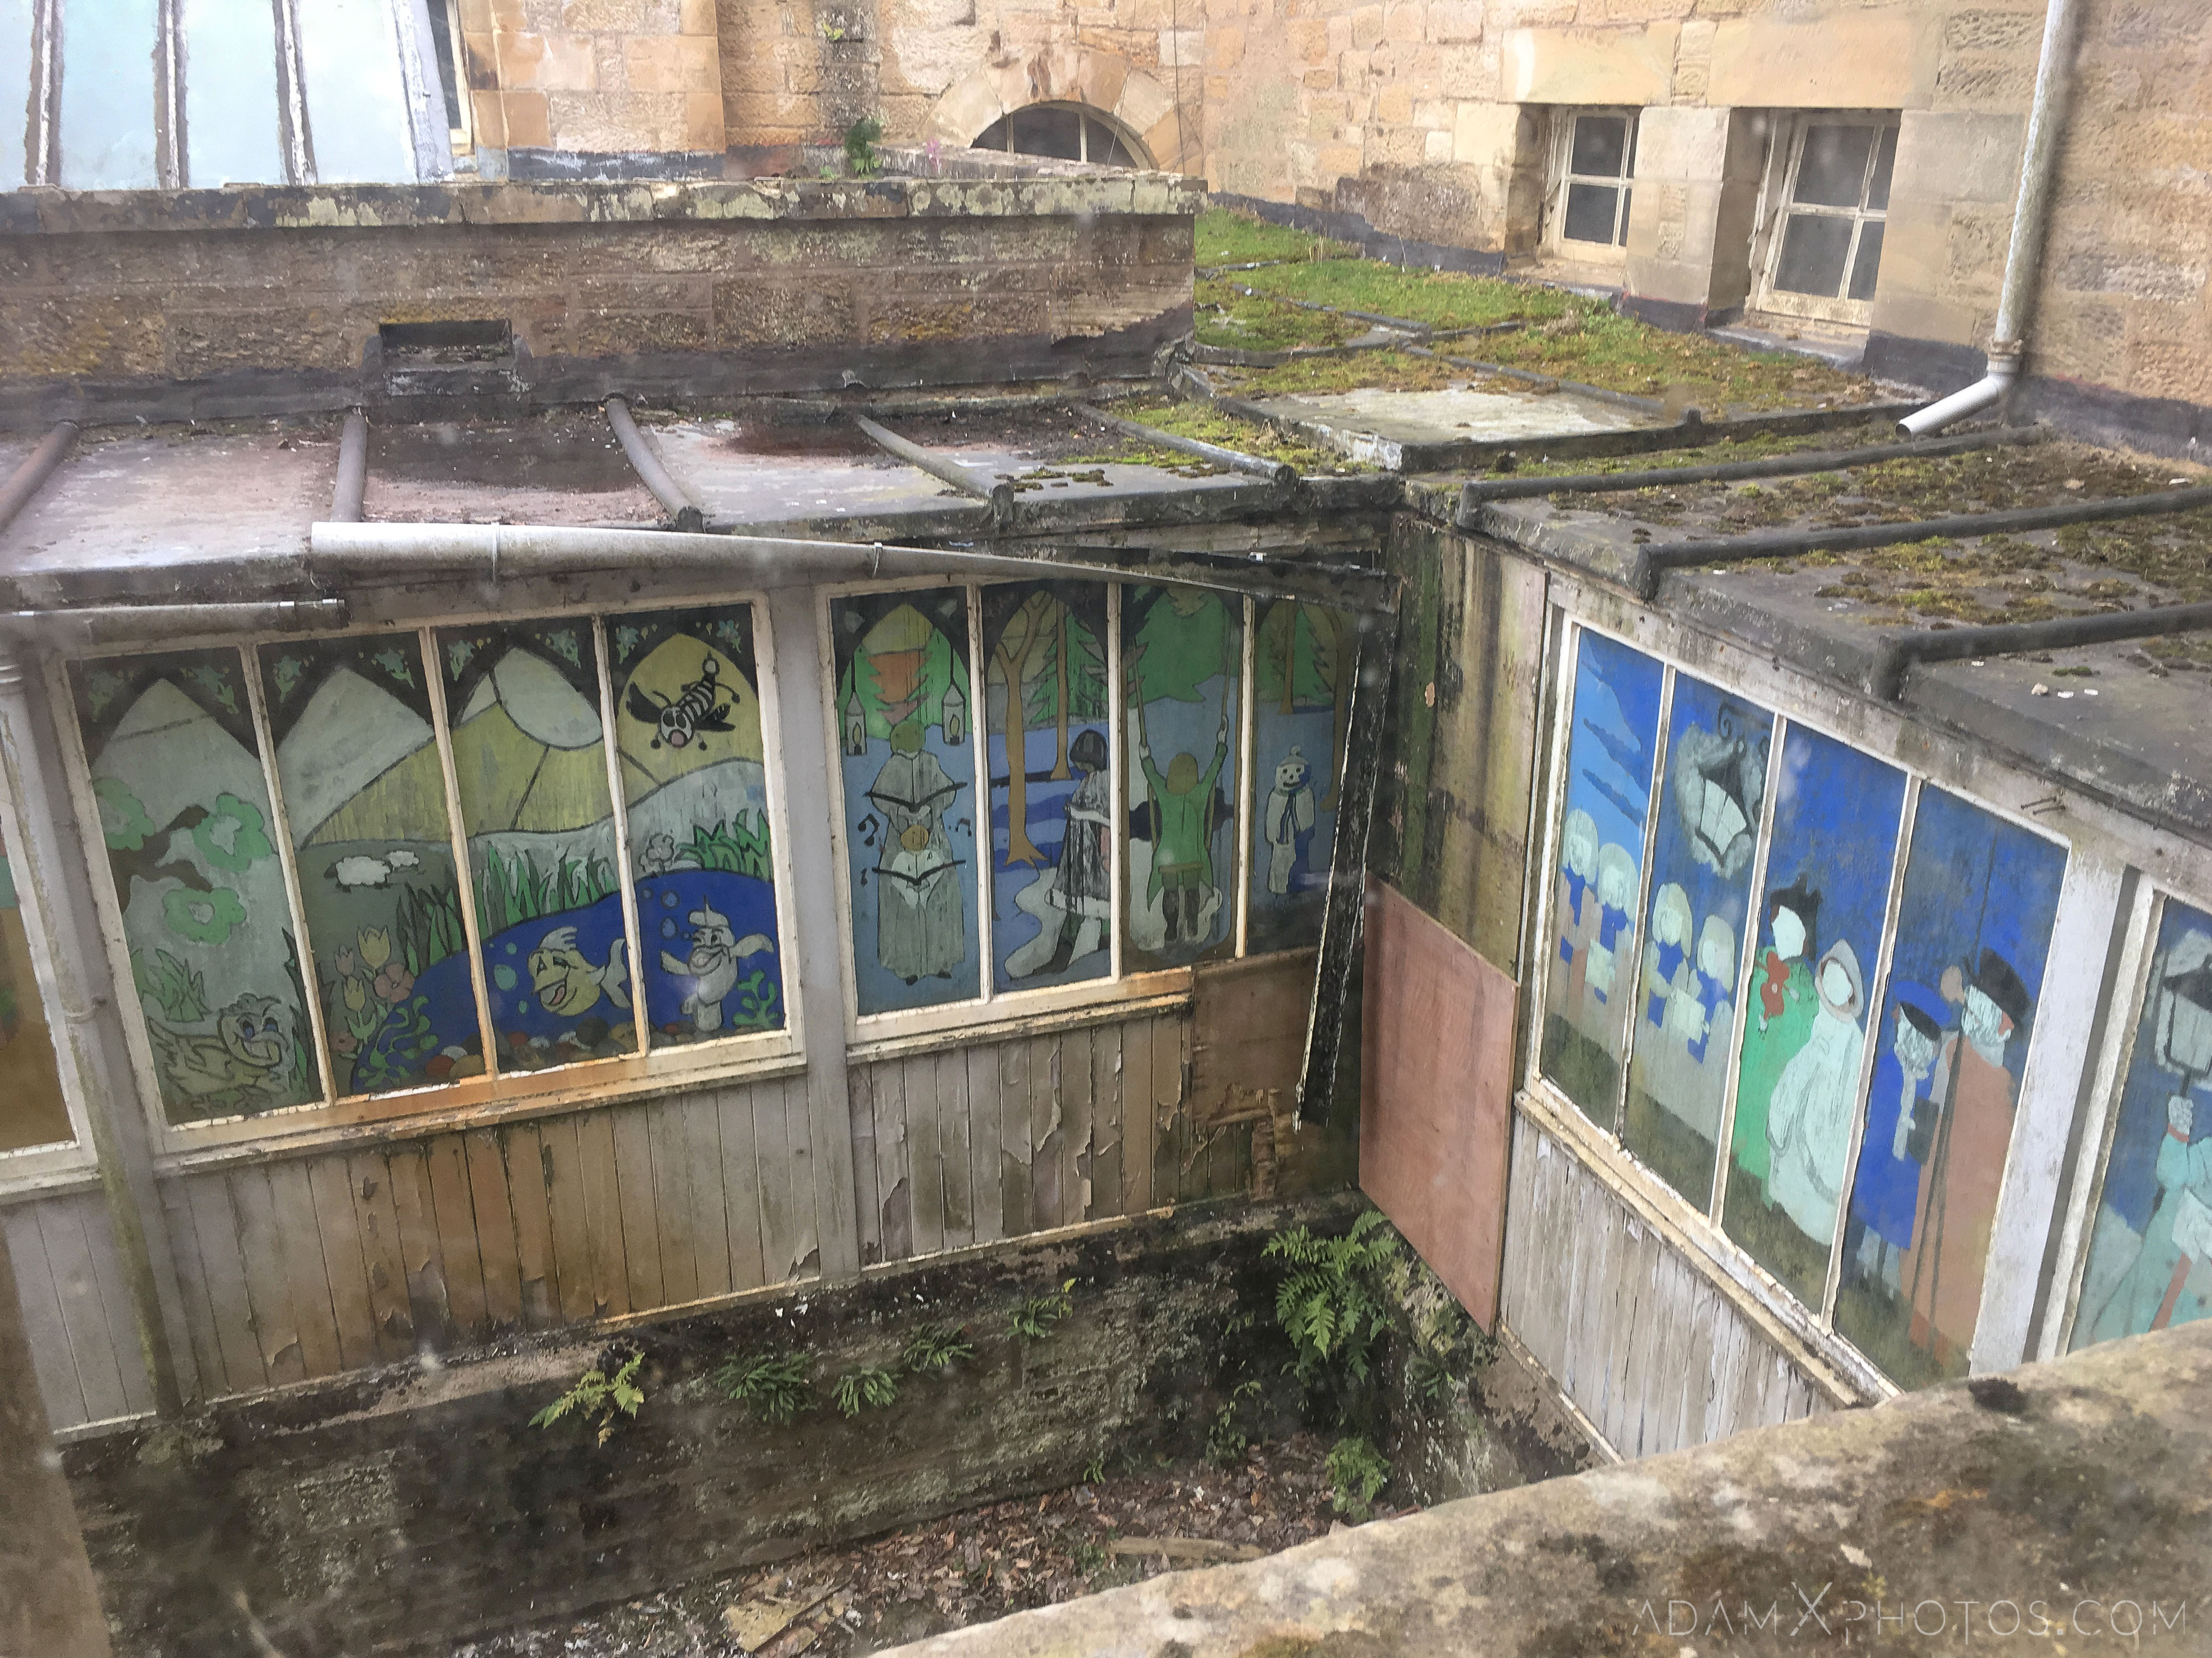 Children's ward corridor painted windows external view Stratheden Hospital Fife Scotland Adam X Urbex Urban Exploration Access 2018 Abandoned decay ruins lost forgotten derelict location creepy haunting eerie